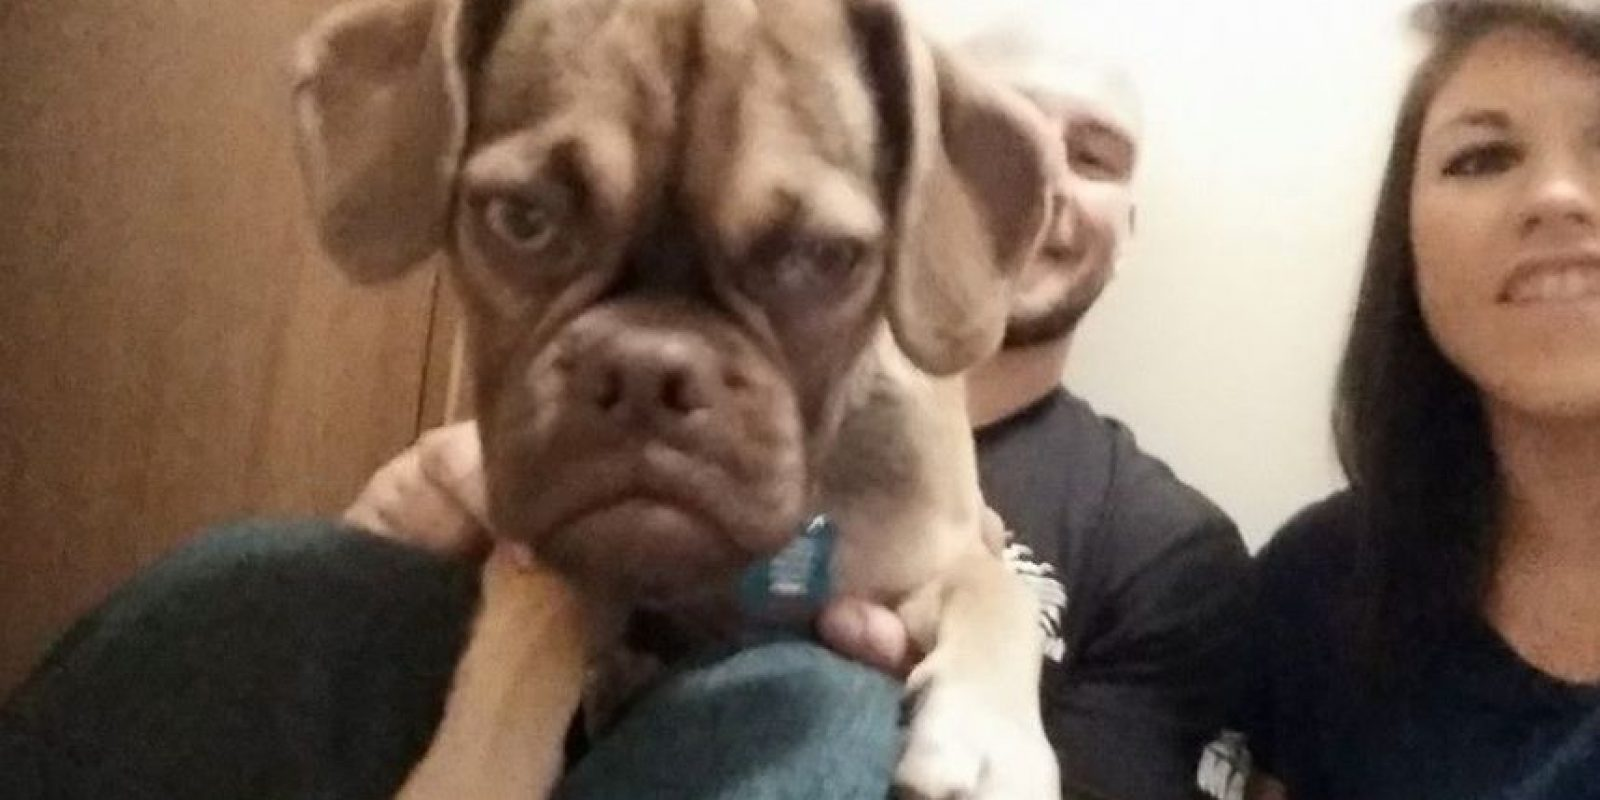 Foto: vía facebook.com/Earl-The-Grumpy-Puppy